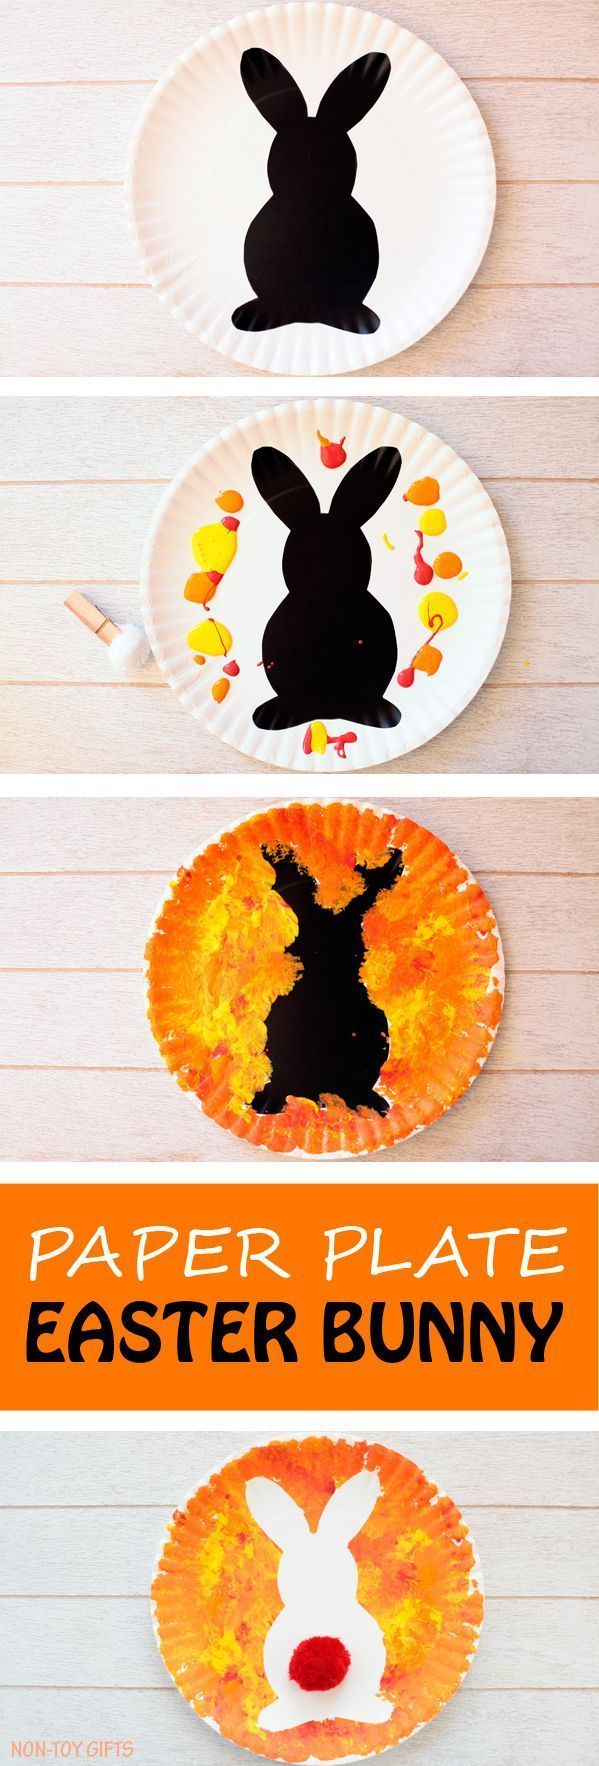 paper plate easter bunny craft for kids easy art project for